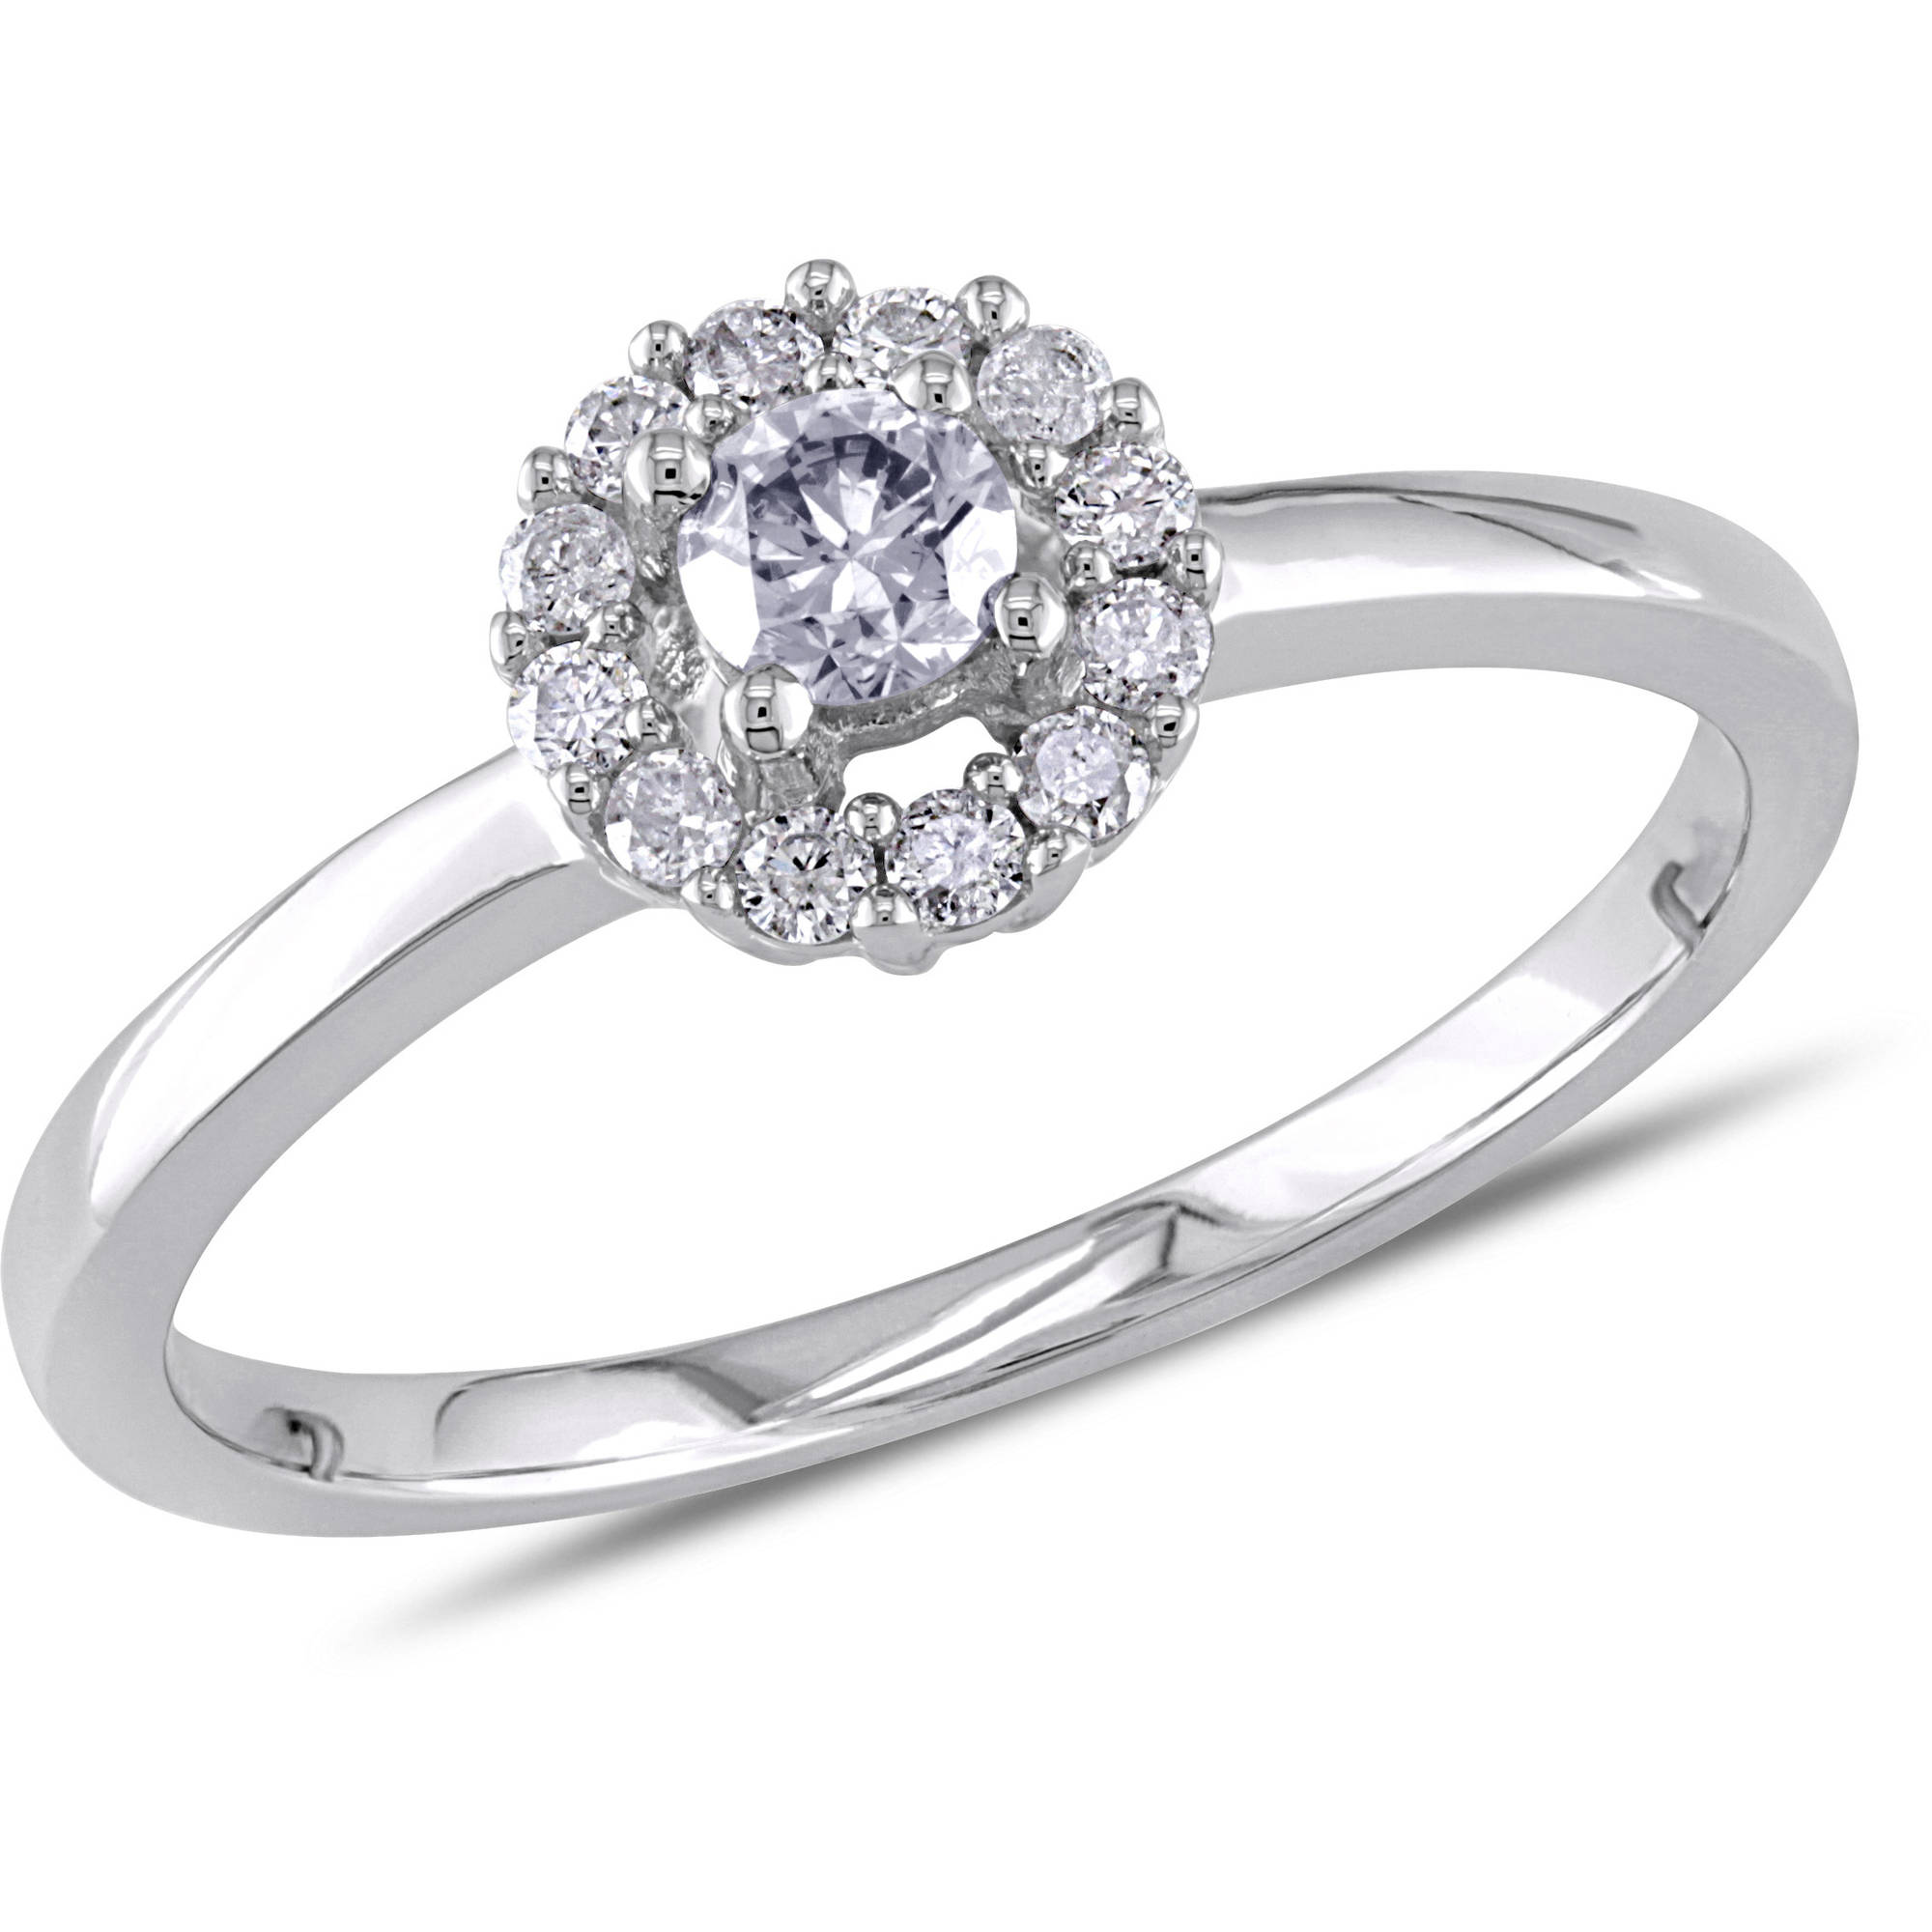 platinum ring tiffany master prong at diamond rings engagement id sale j solitaire for and jewelry co carat